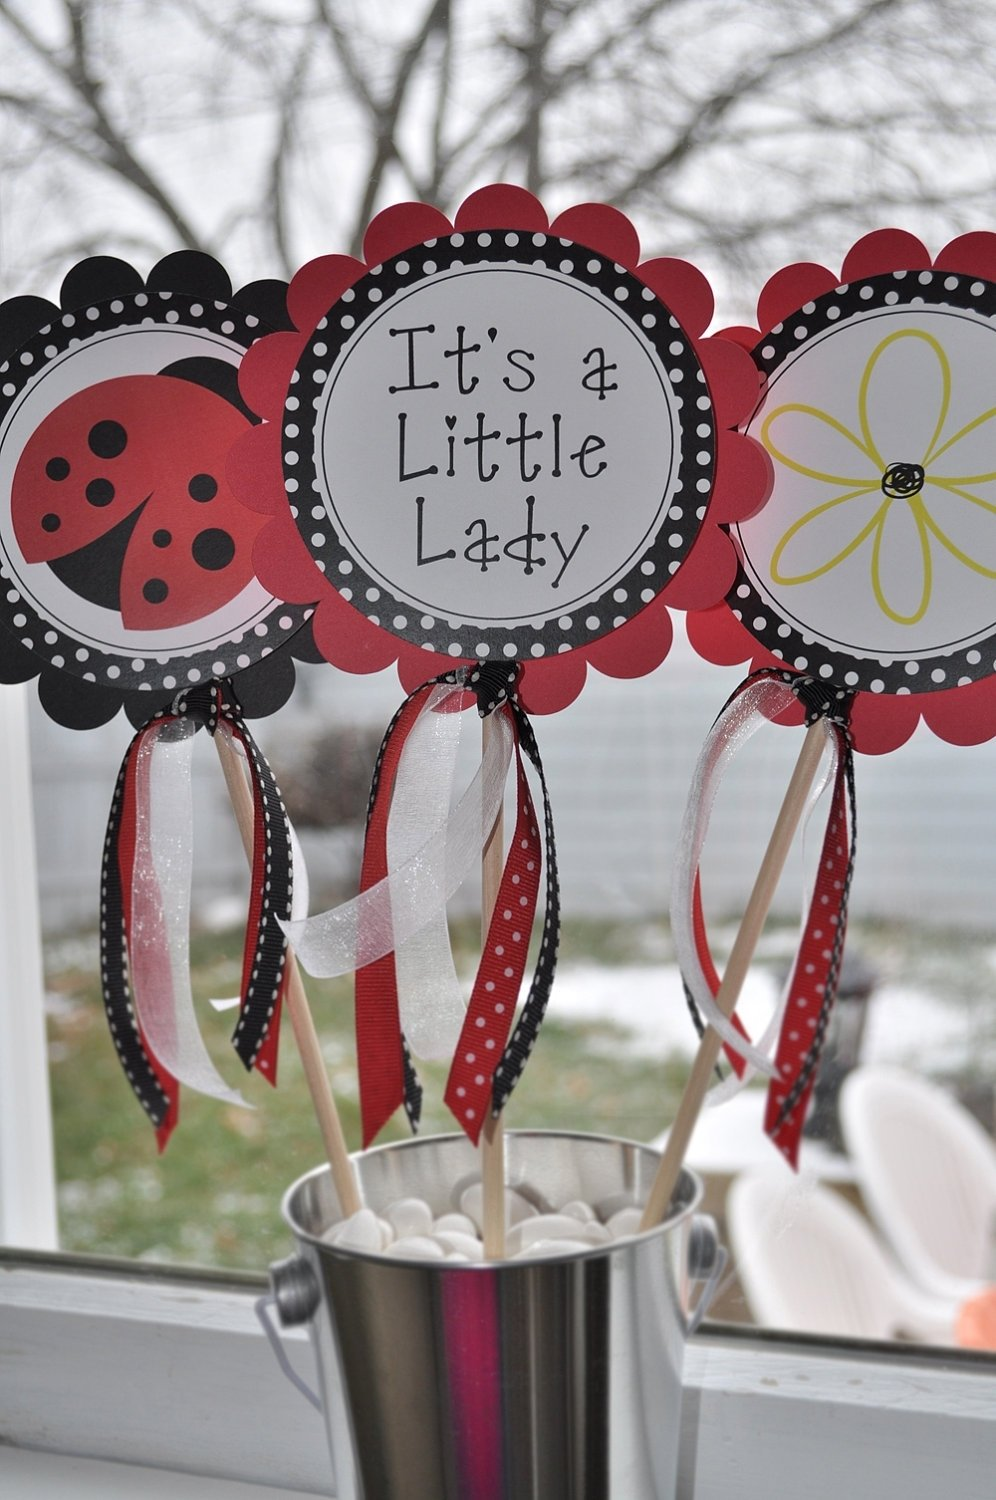 ladybug baby shower centerpiece ideas | omega-center - ideas for